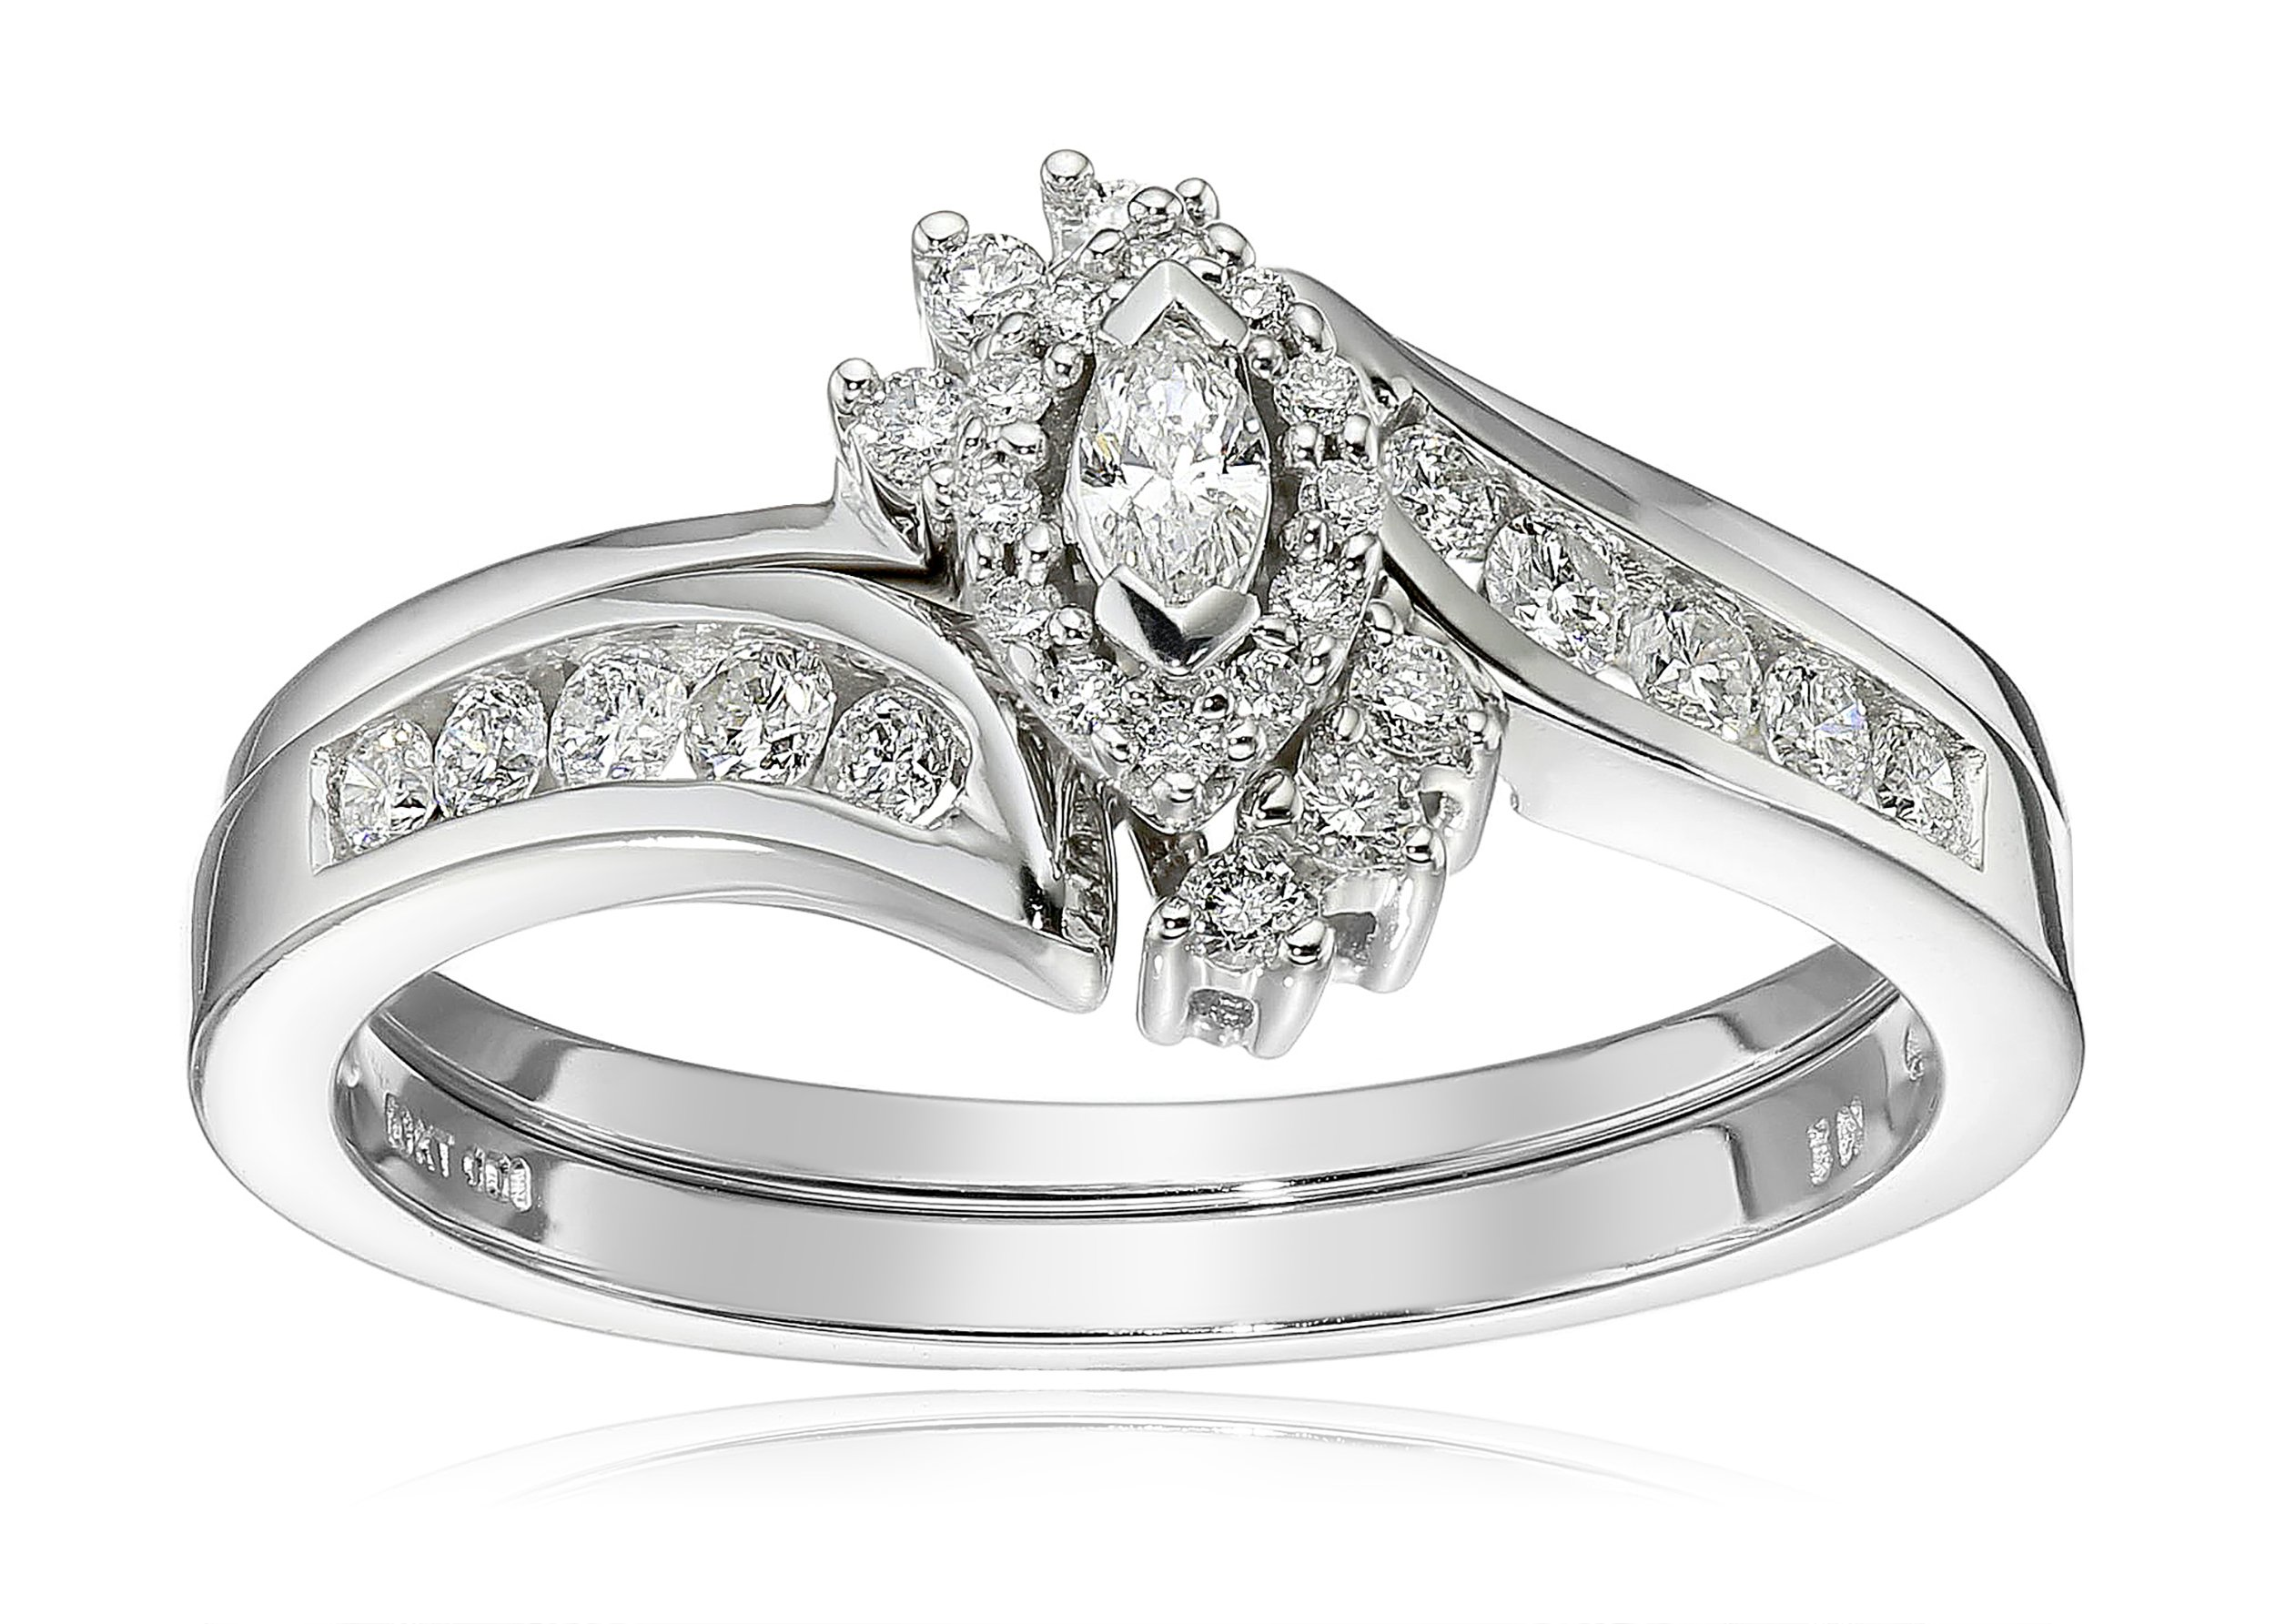 10k White Gold Marquise and Round Diamond Bypass with Interlocking Band Bridal Set (0.33 cttw I-J Color, I2 Clarity), Size 8,white,